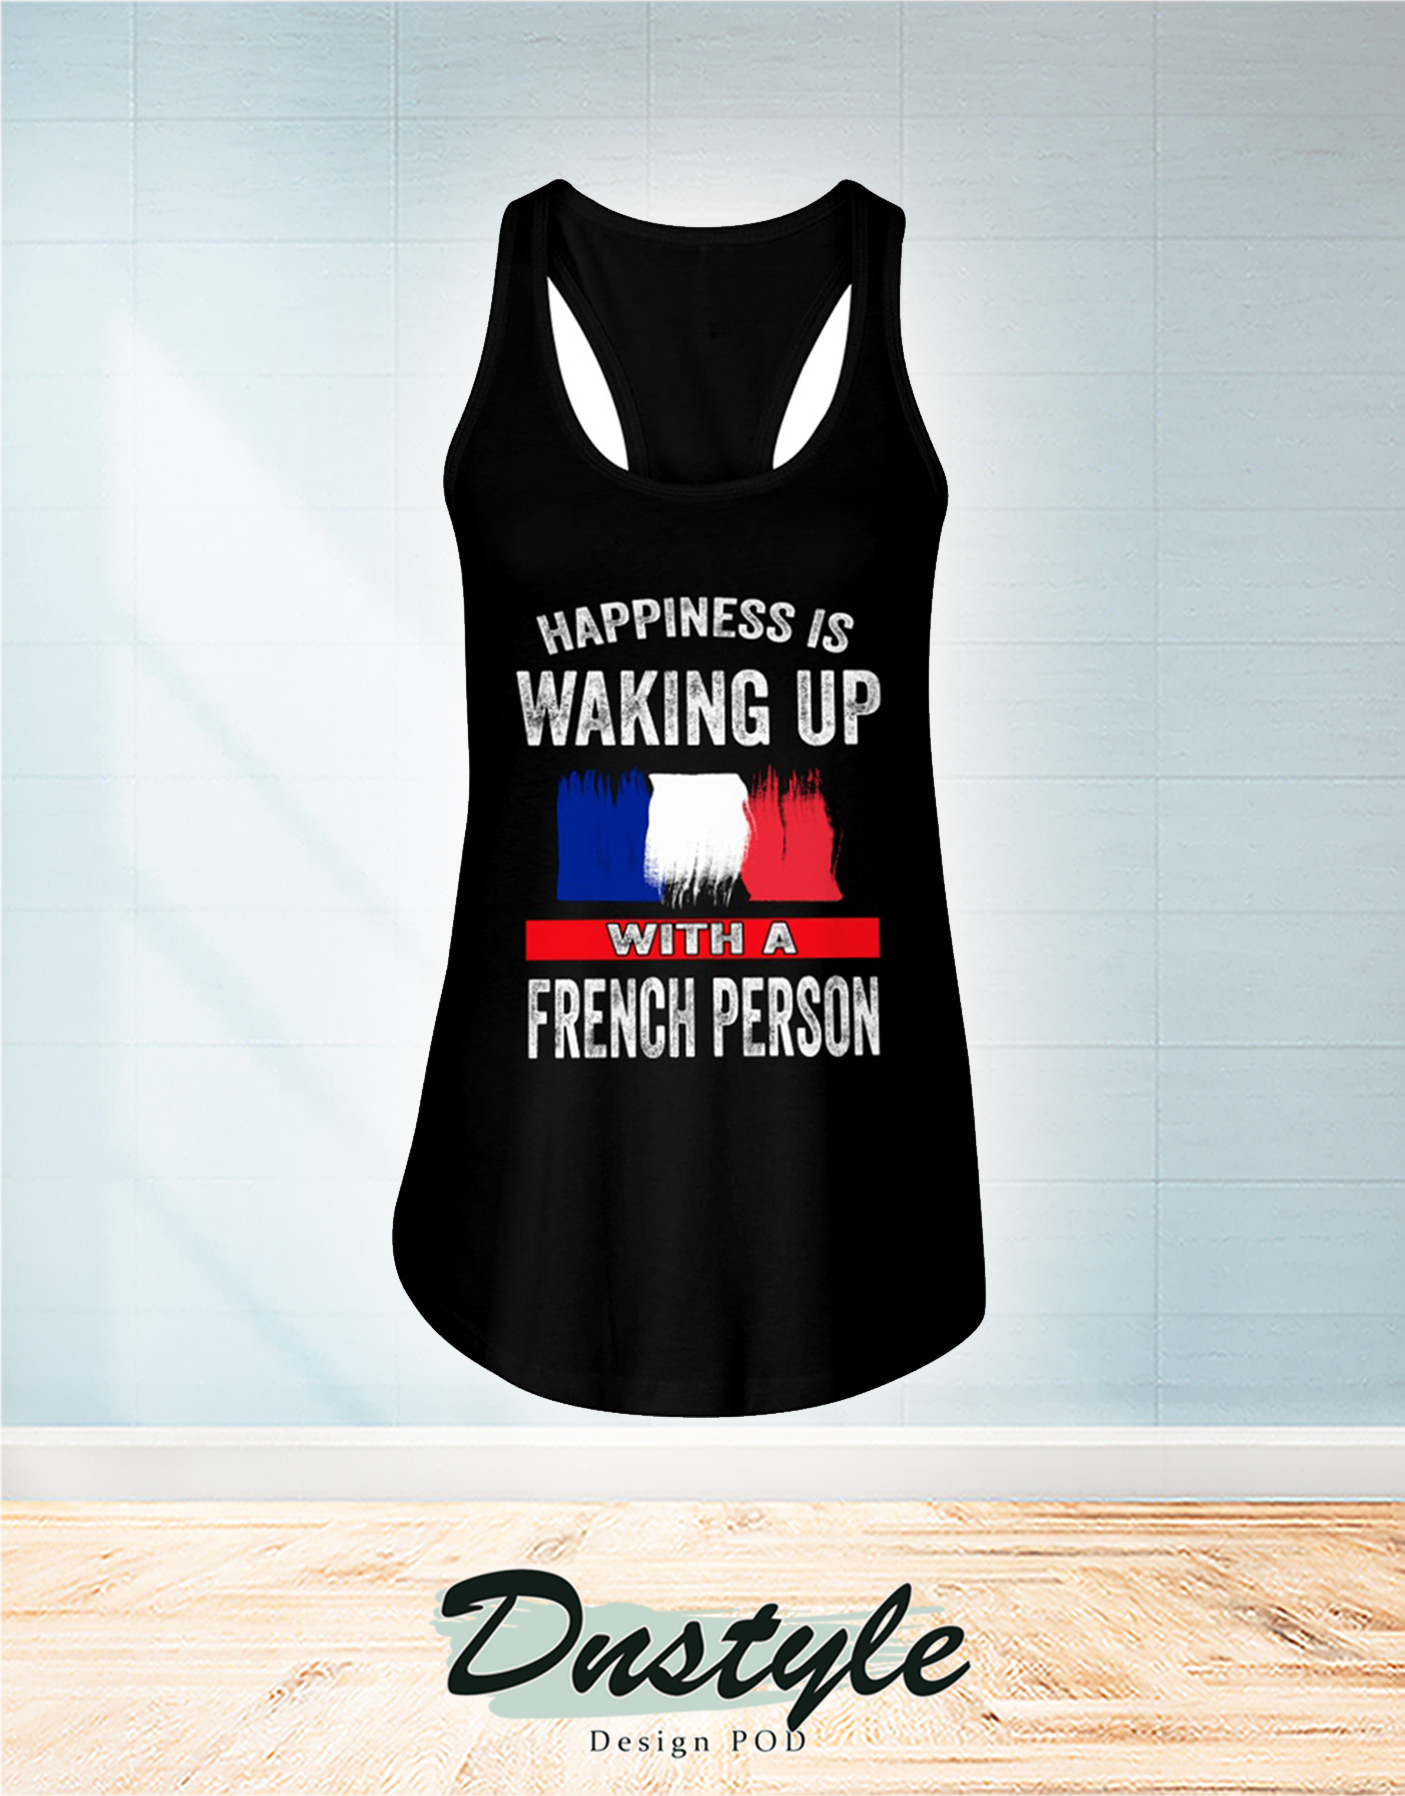 Happiness is waking up with a french person flowy tank